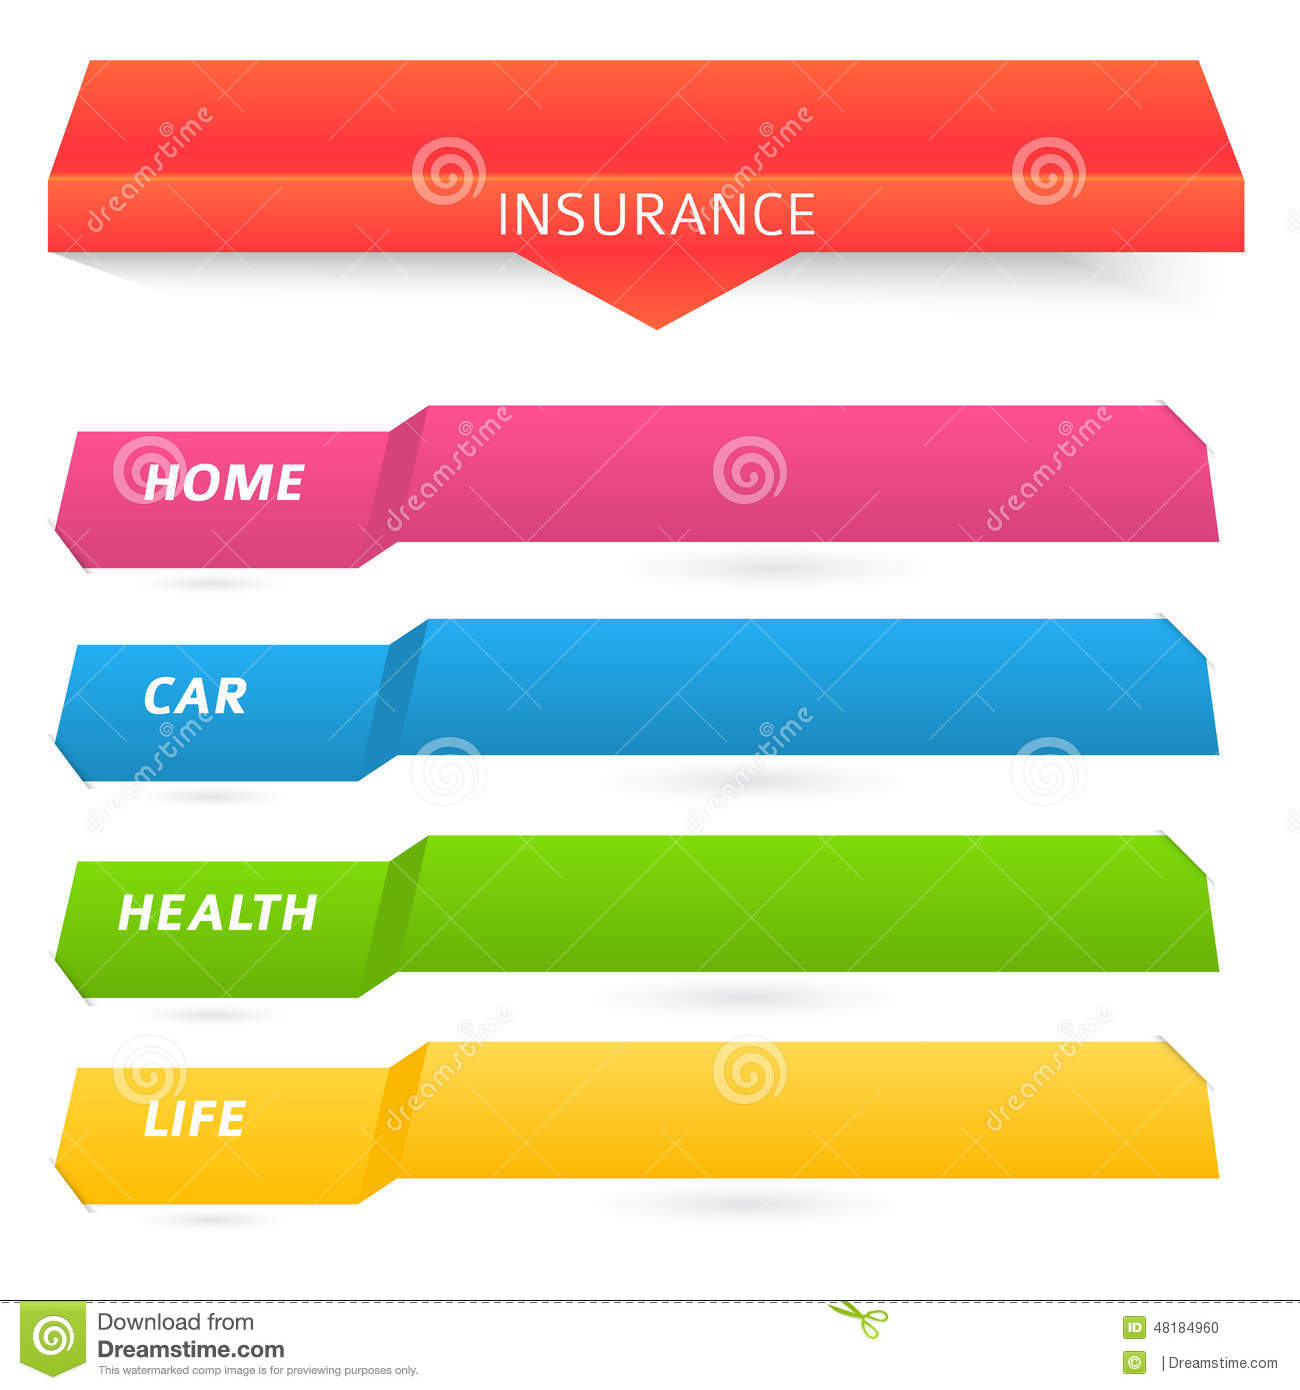 List of types of insurance services company stock vector for The design company